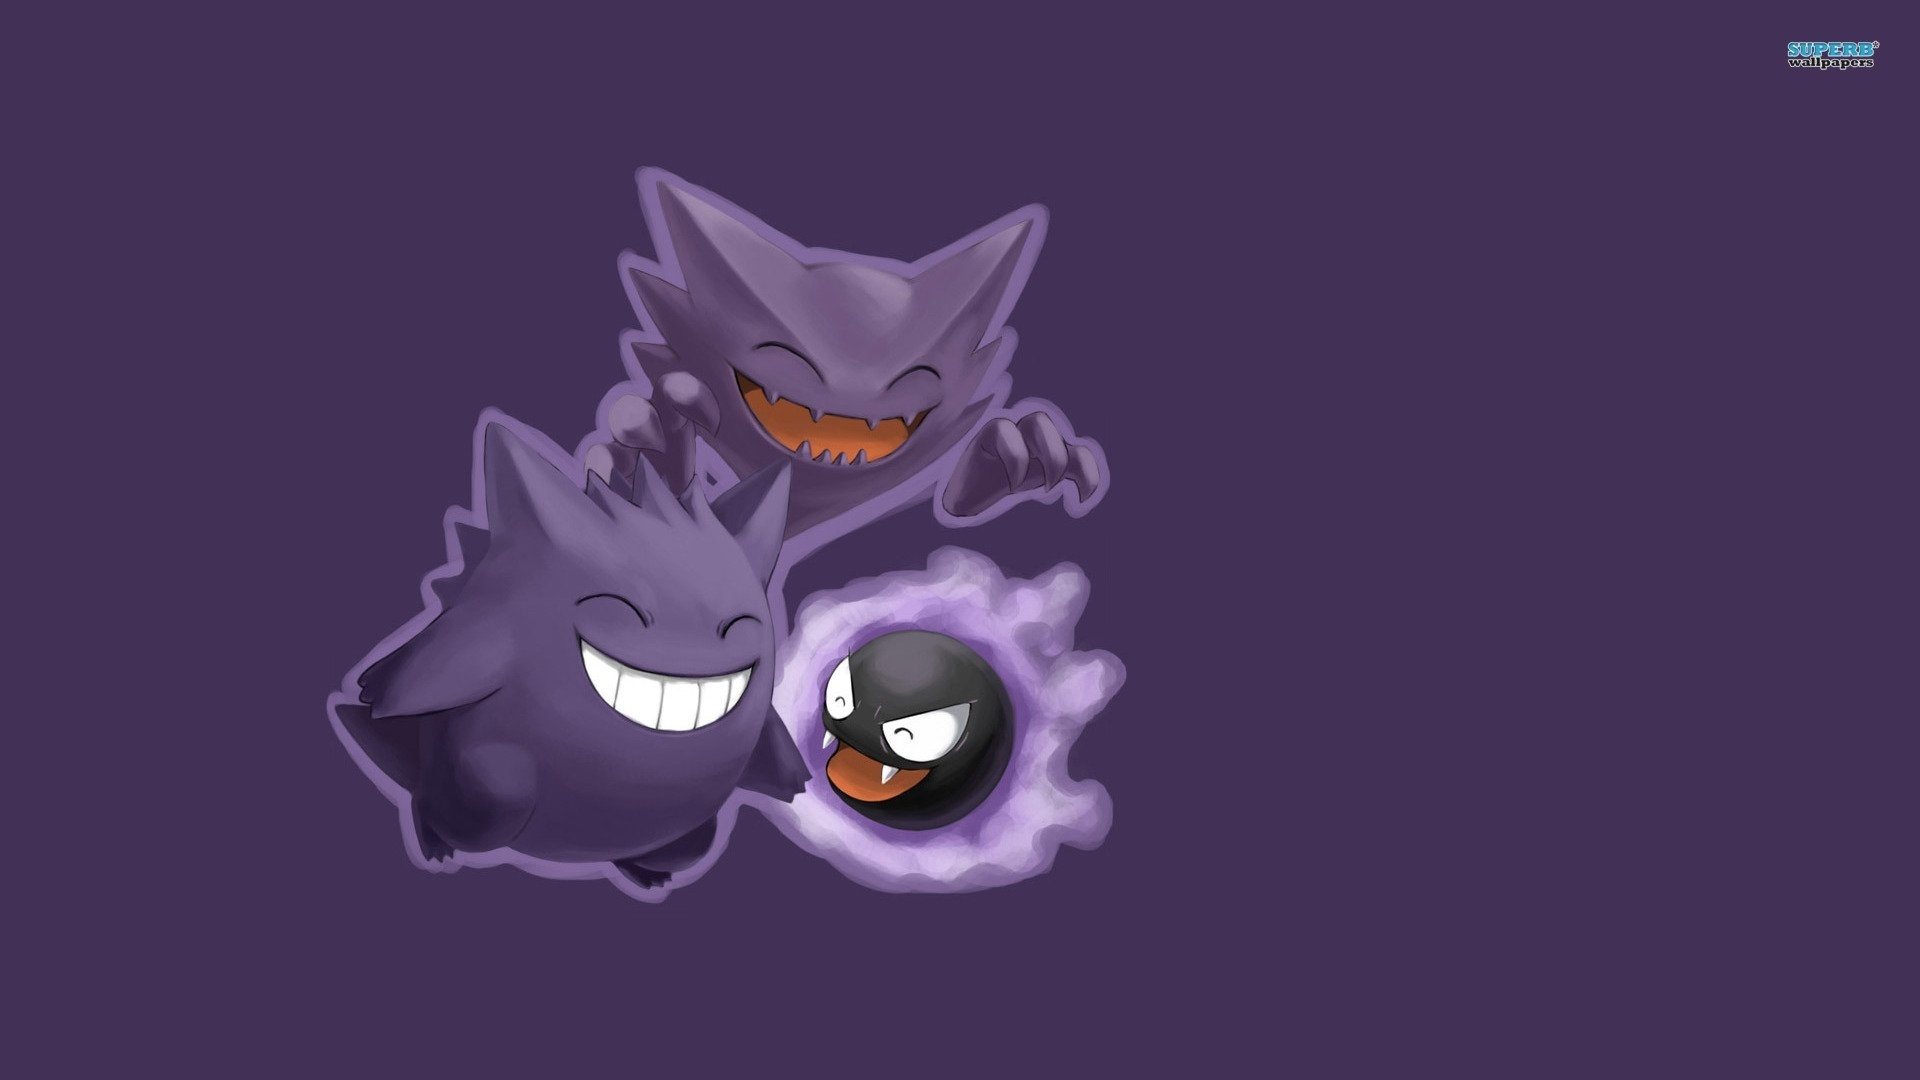 gastly haunter and gengar - pokemon - walldevil